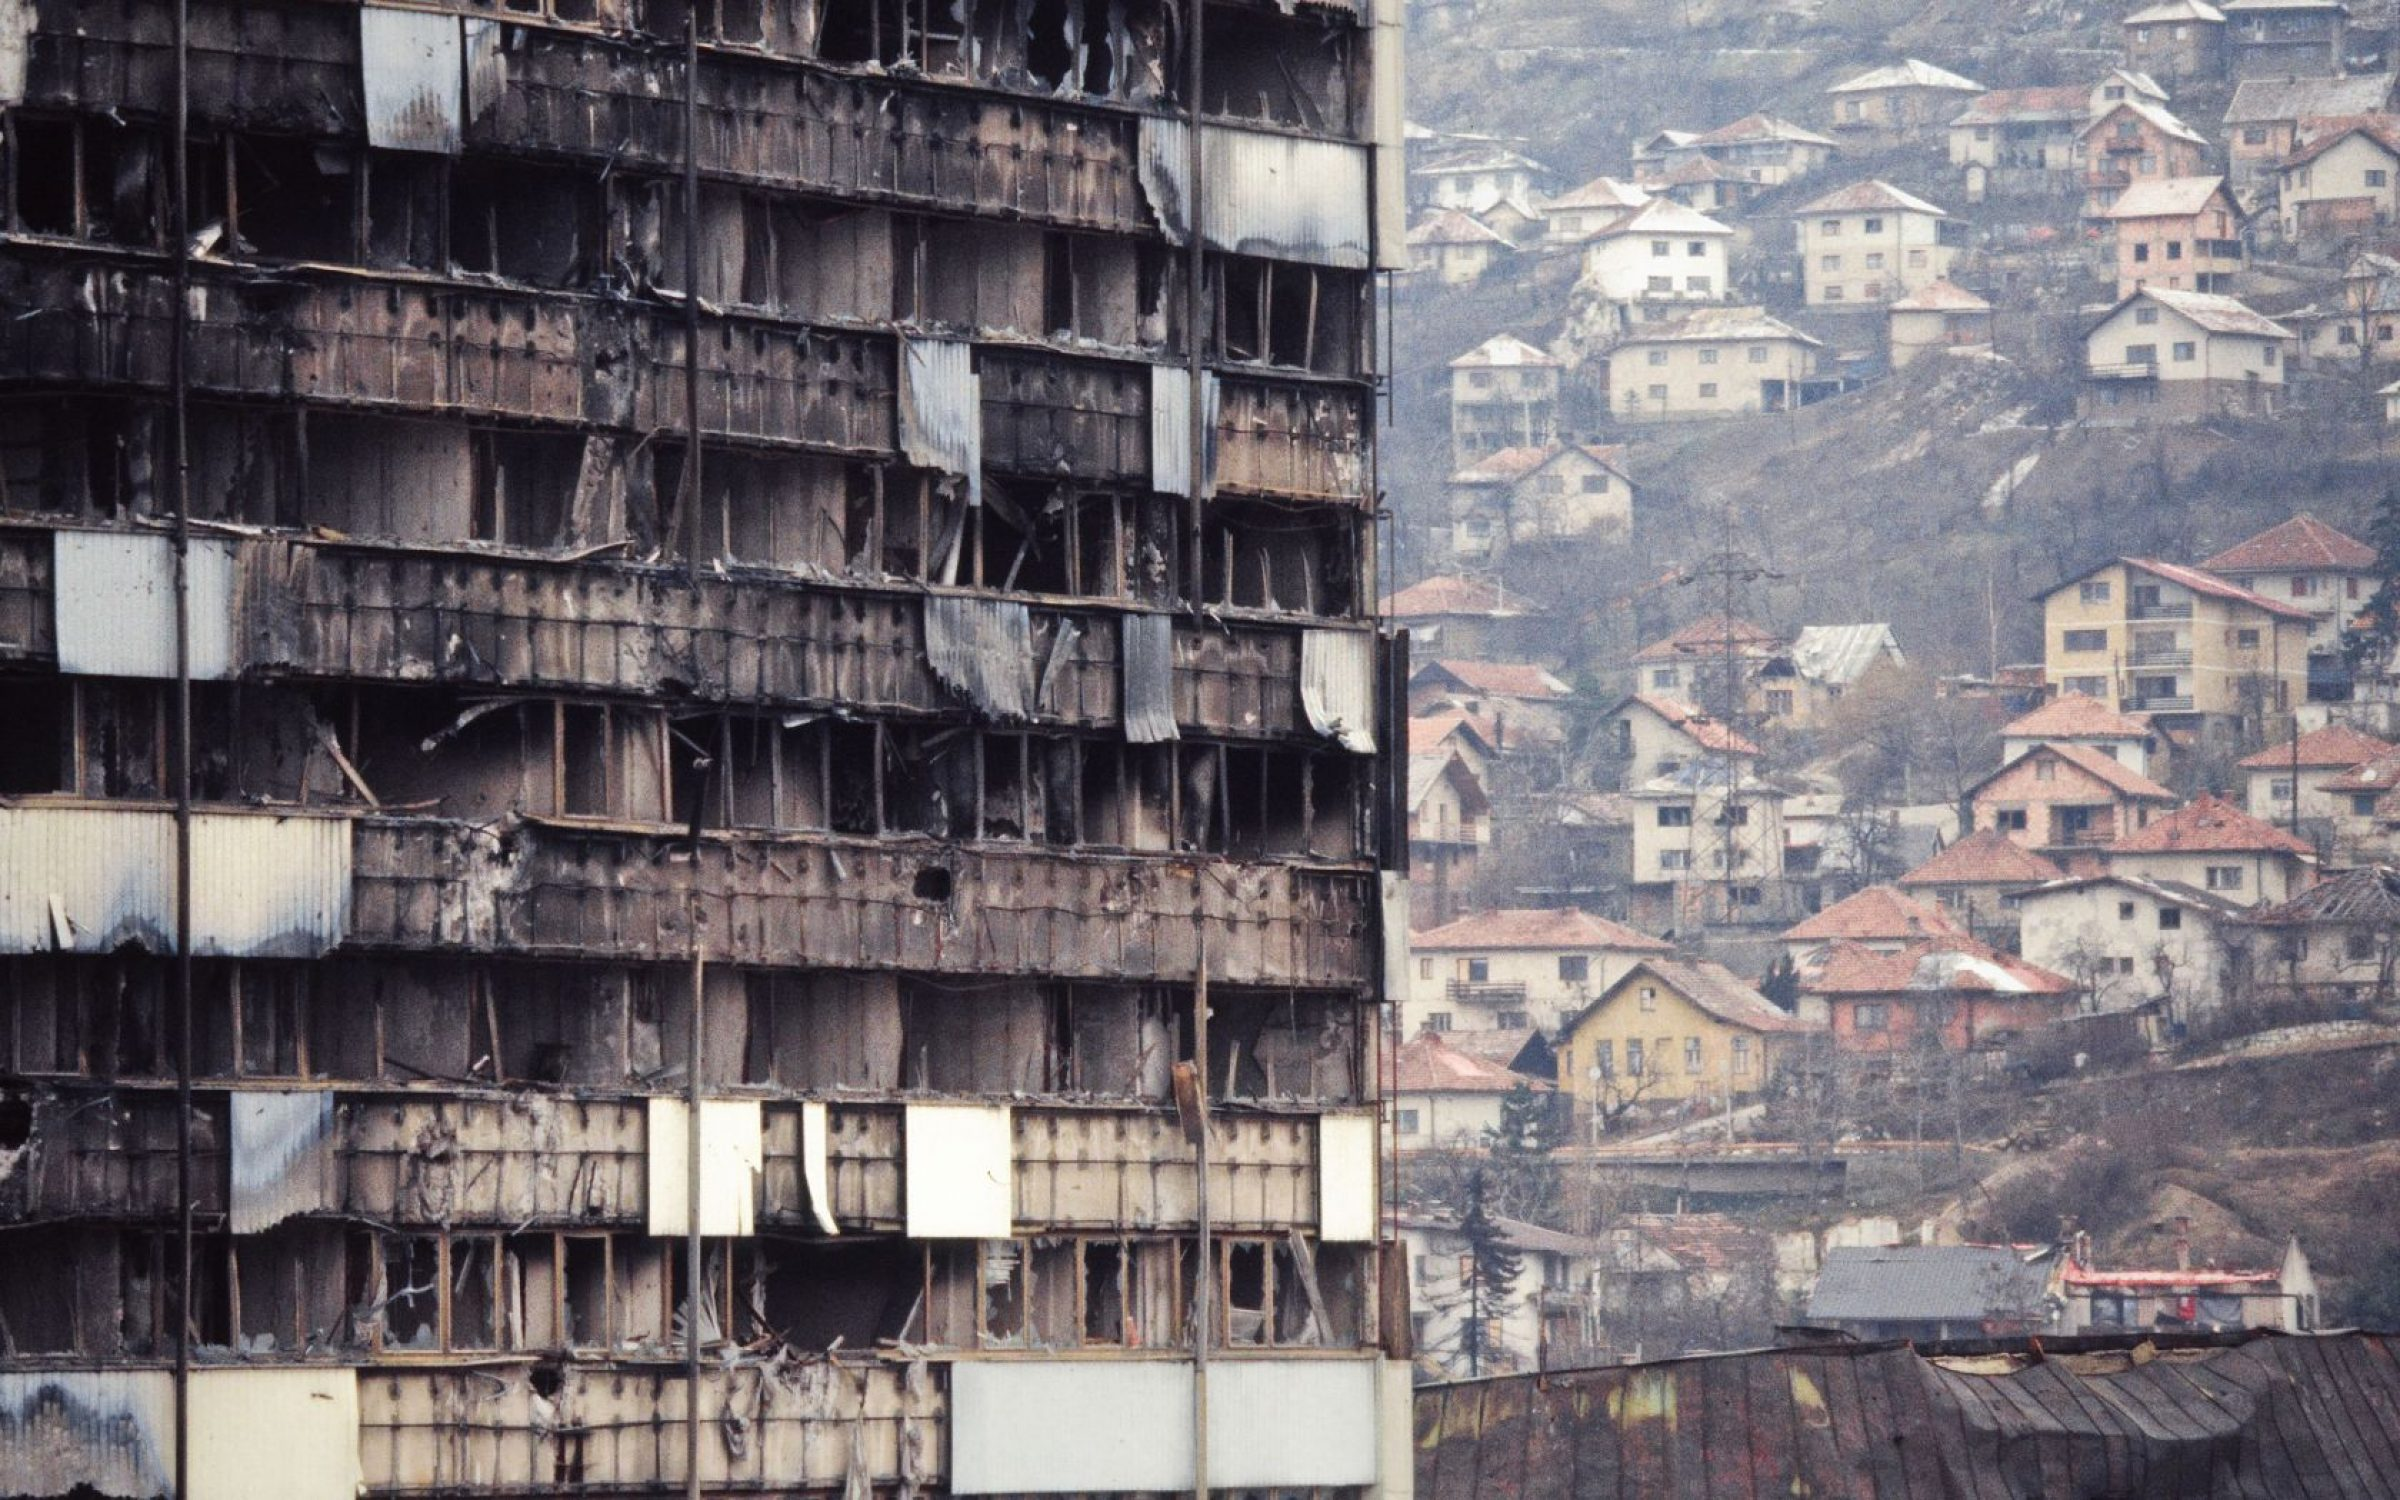 A burned-out building during the Seige of Sarajevo, 1994. Credit: Andia/Universal Images Group via Getty Images.